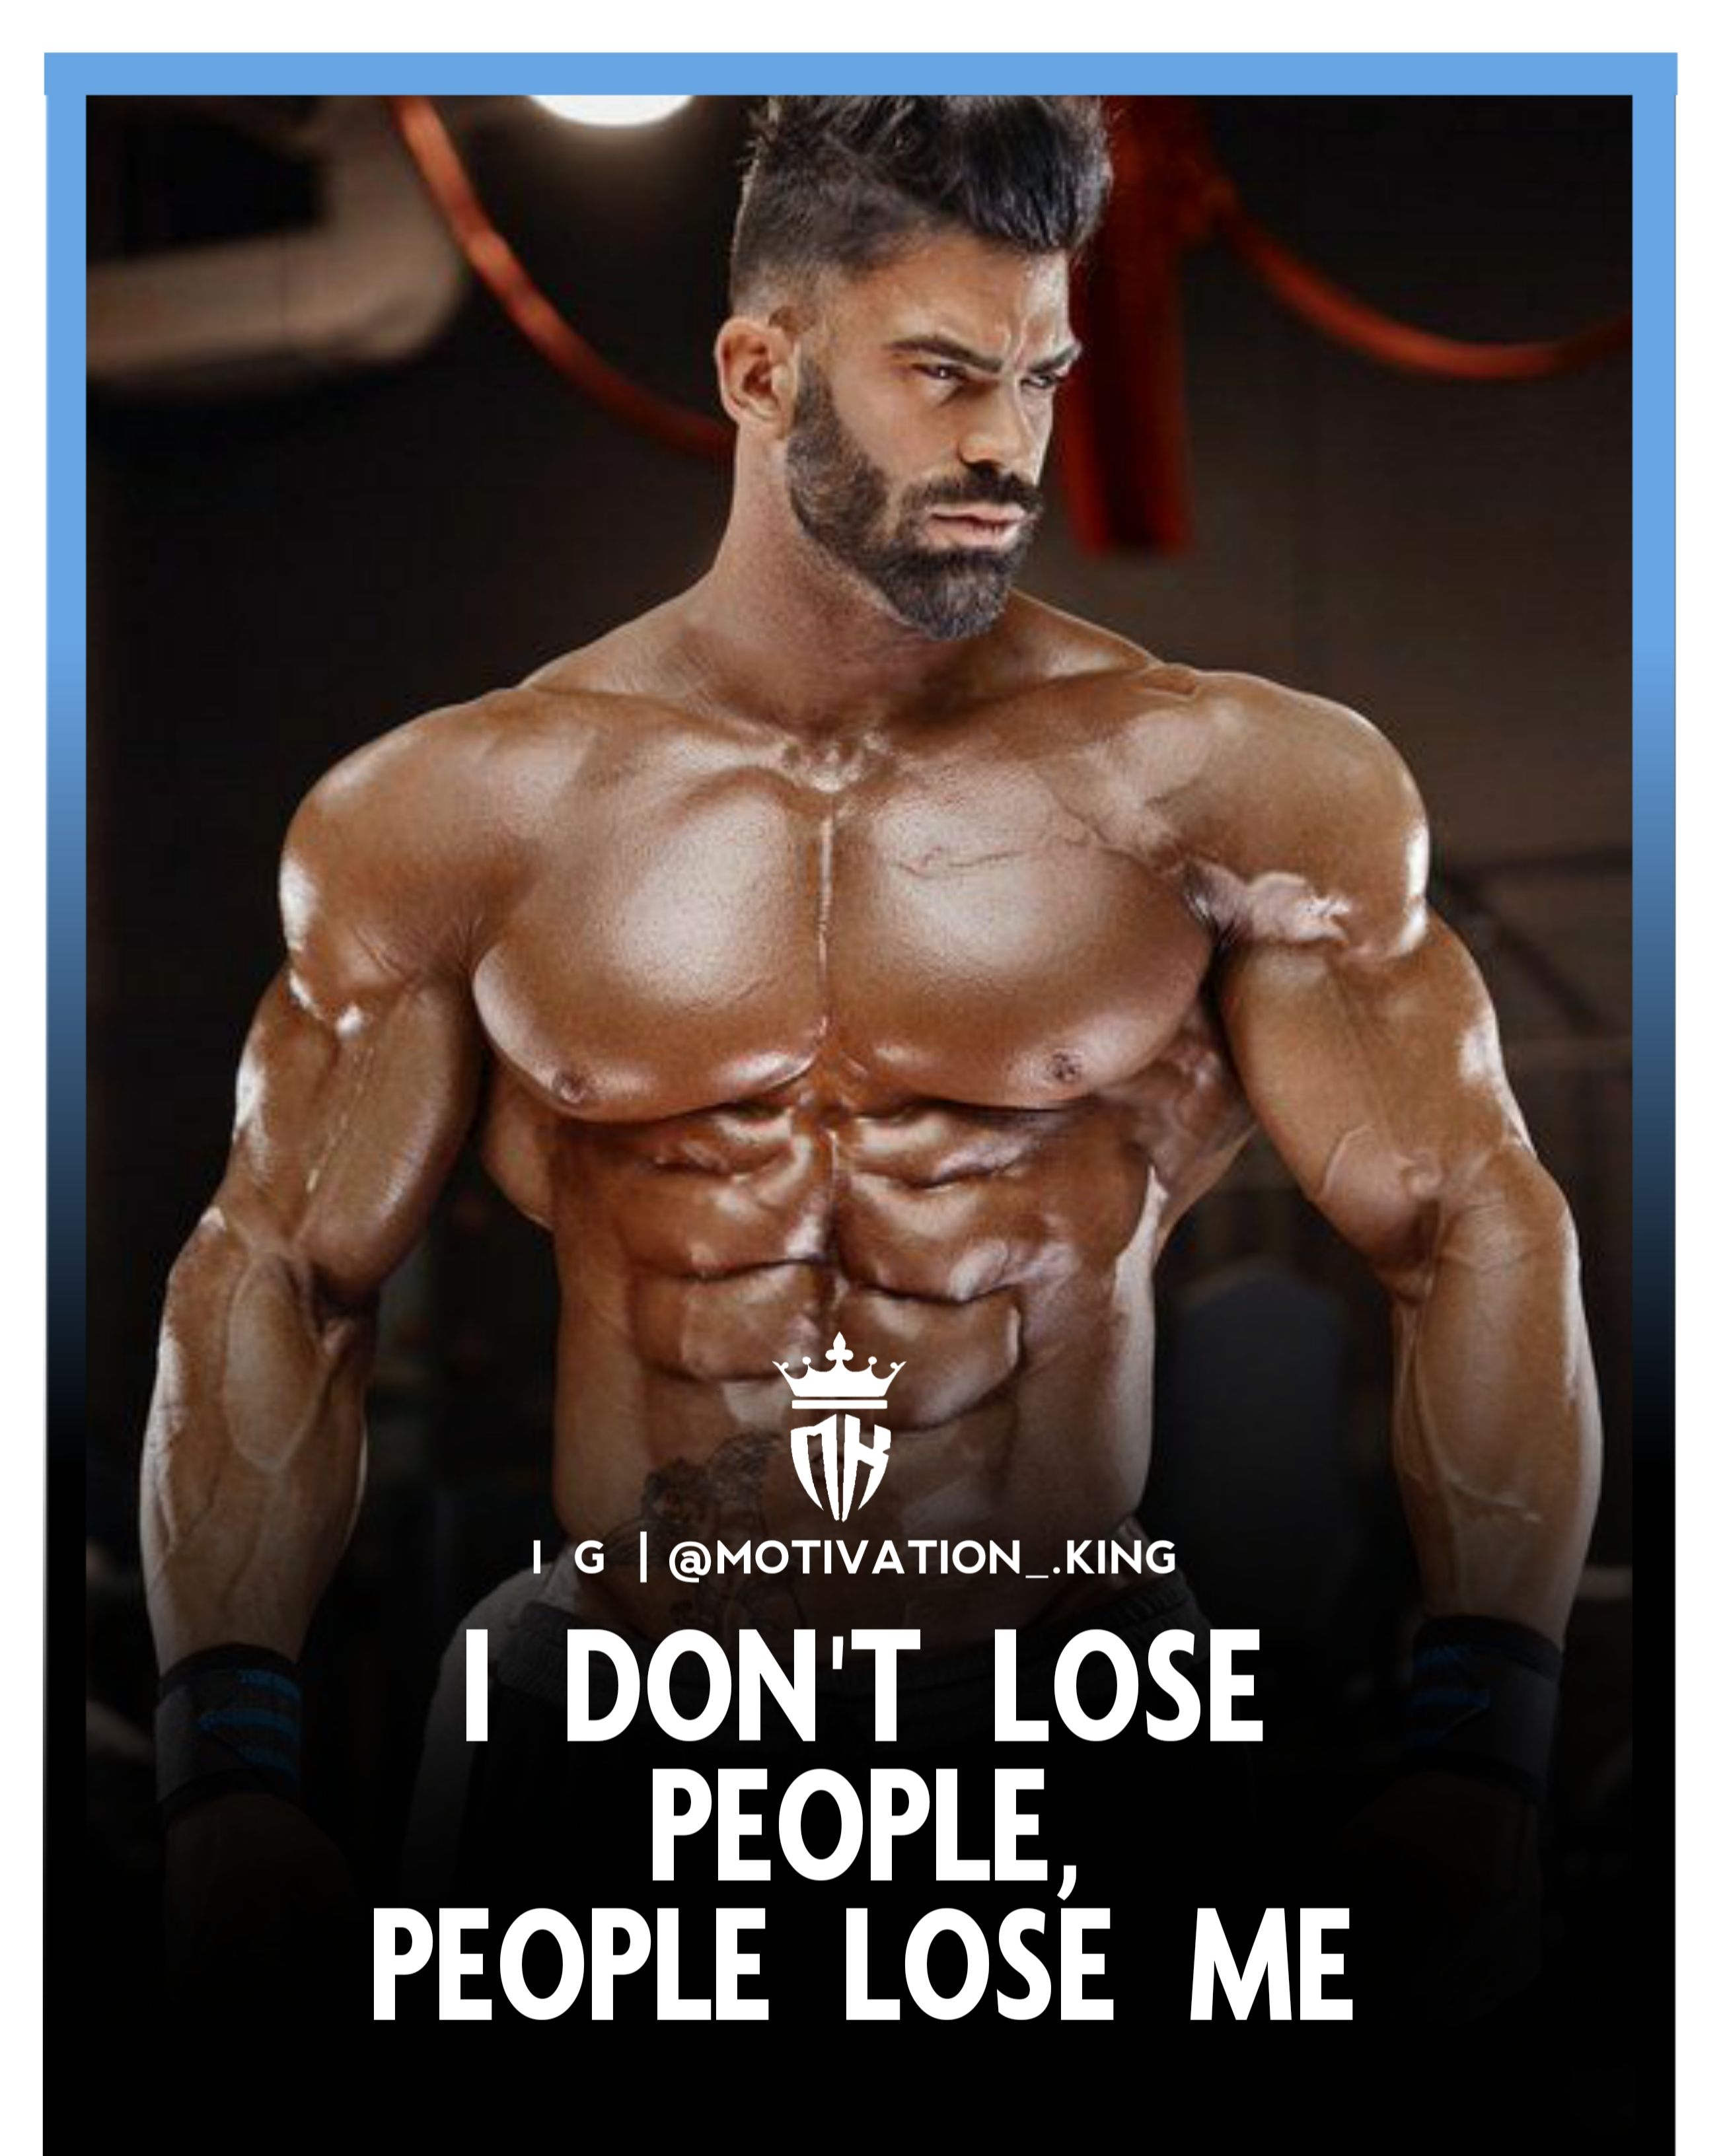 Amazing Body Builder And Fitness Quotes By Motivation King Attitude Quotes For Boys Attitude Quotes Bodybuilding Quotes